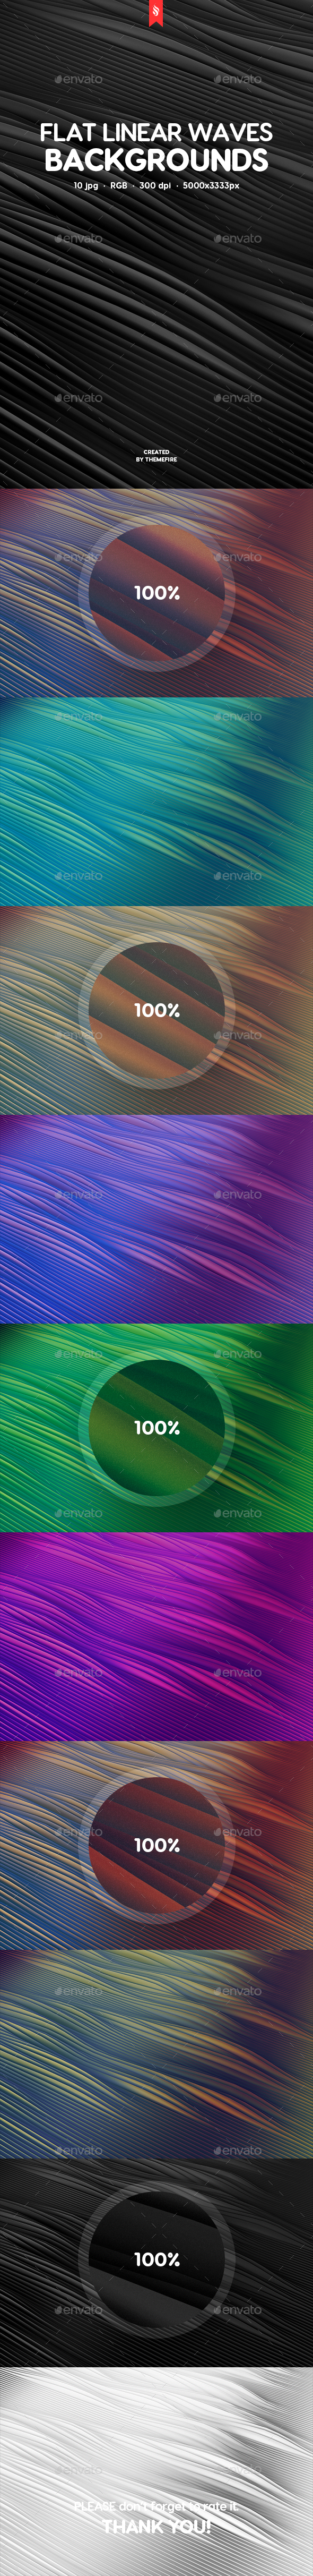 Flat Linear Waves Backgrounds - Abstract Backgrounds